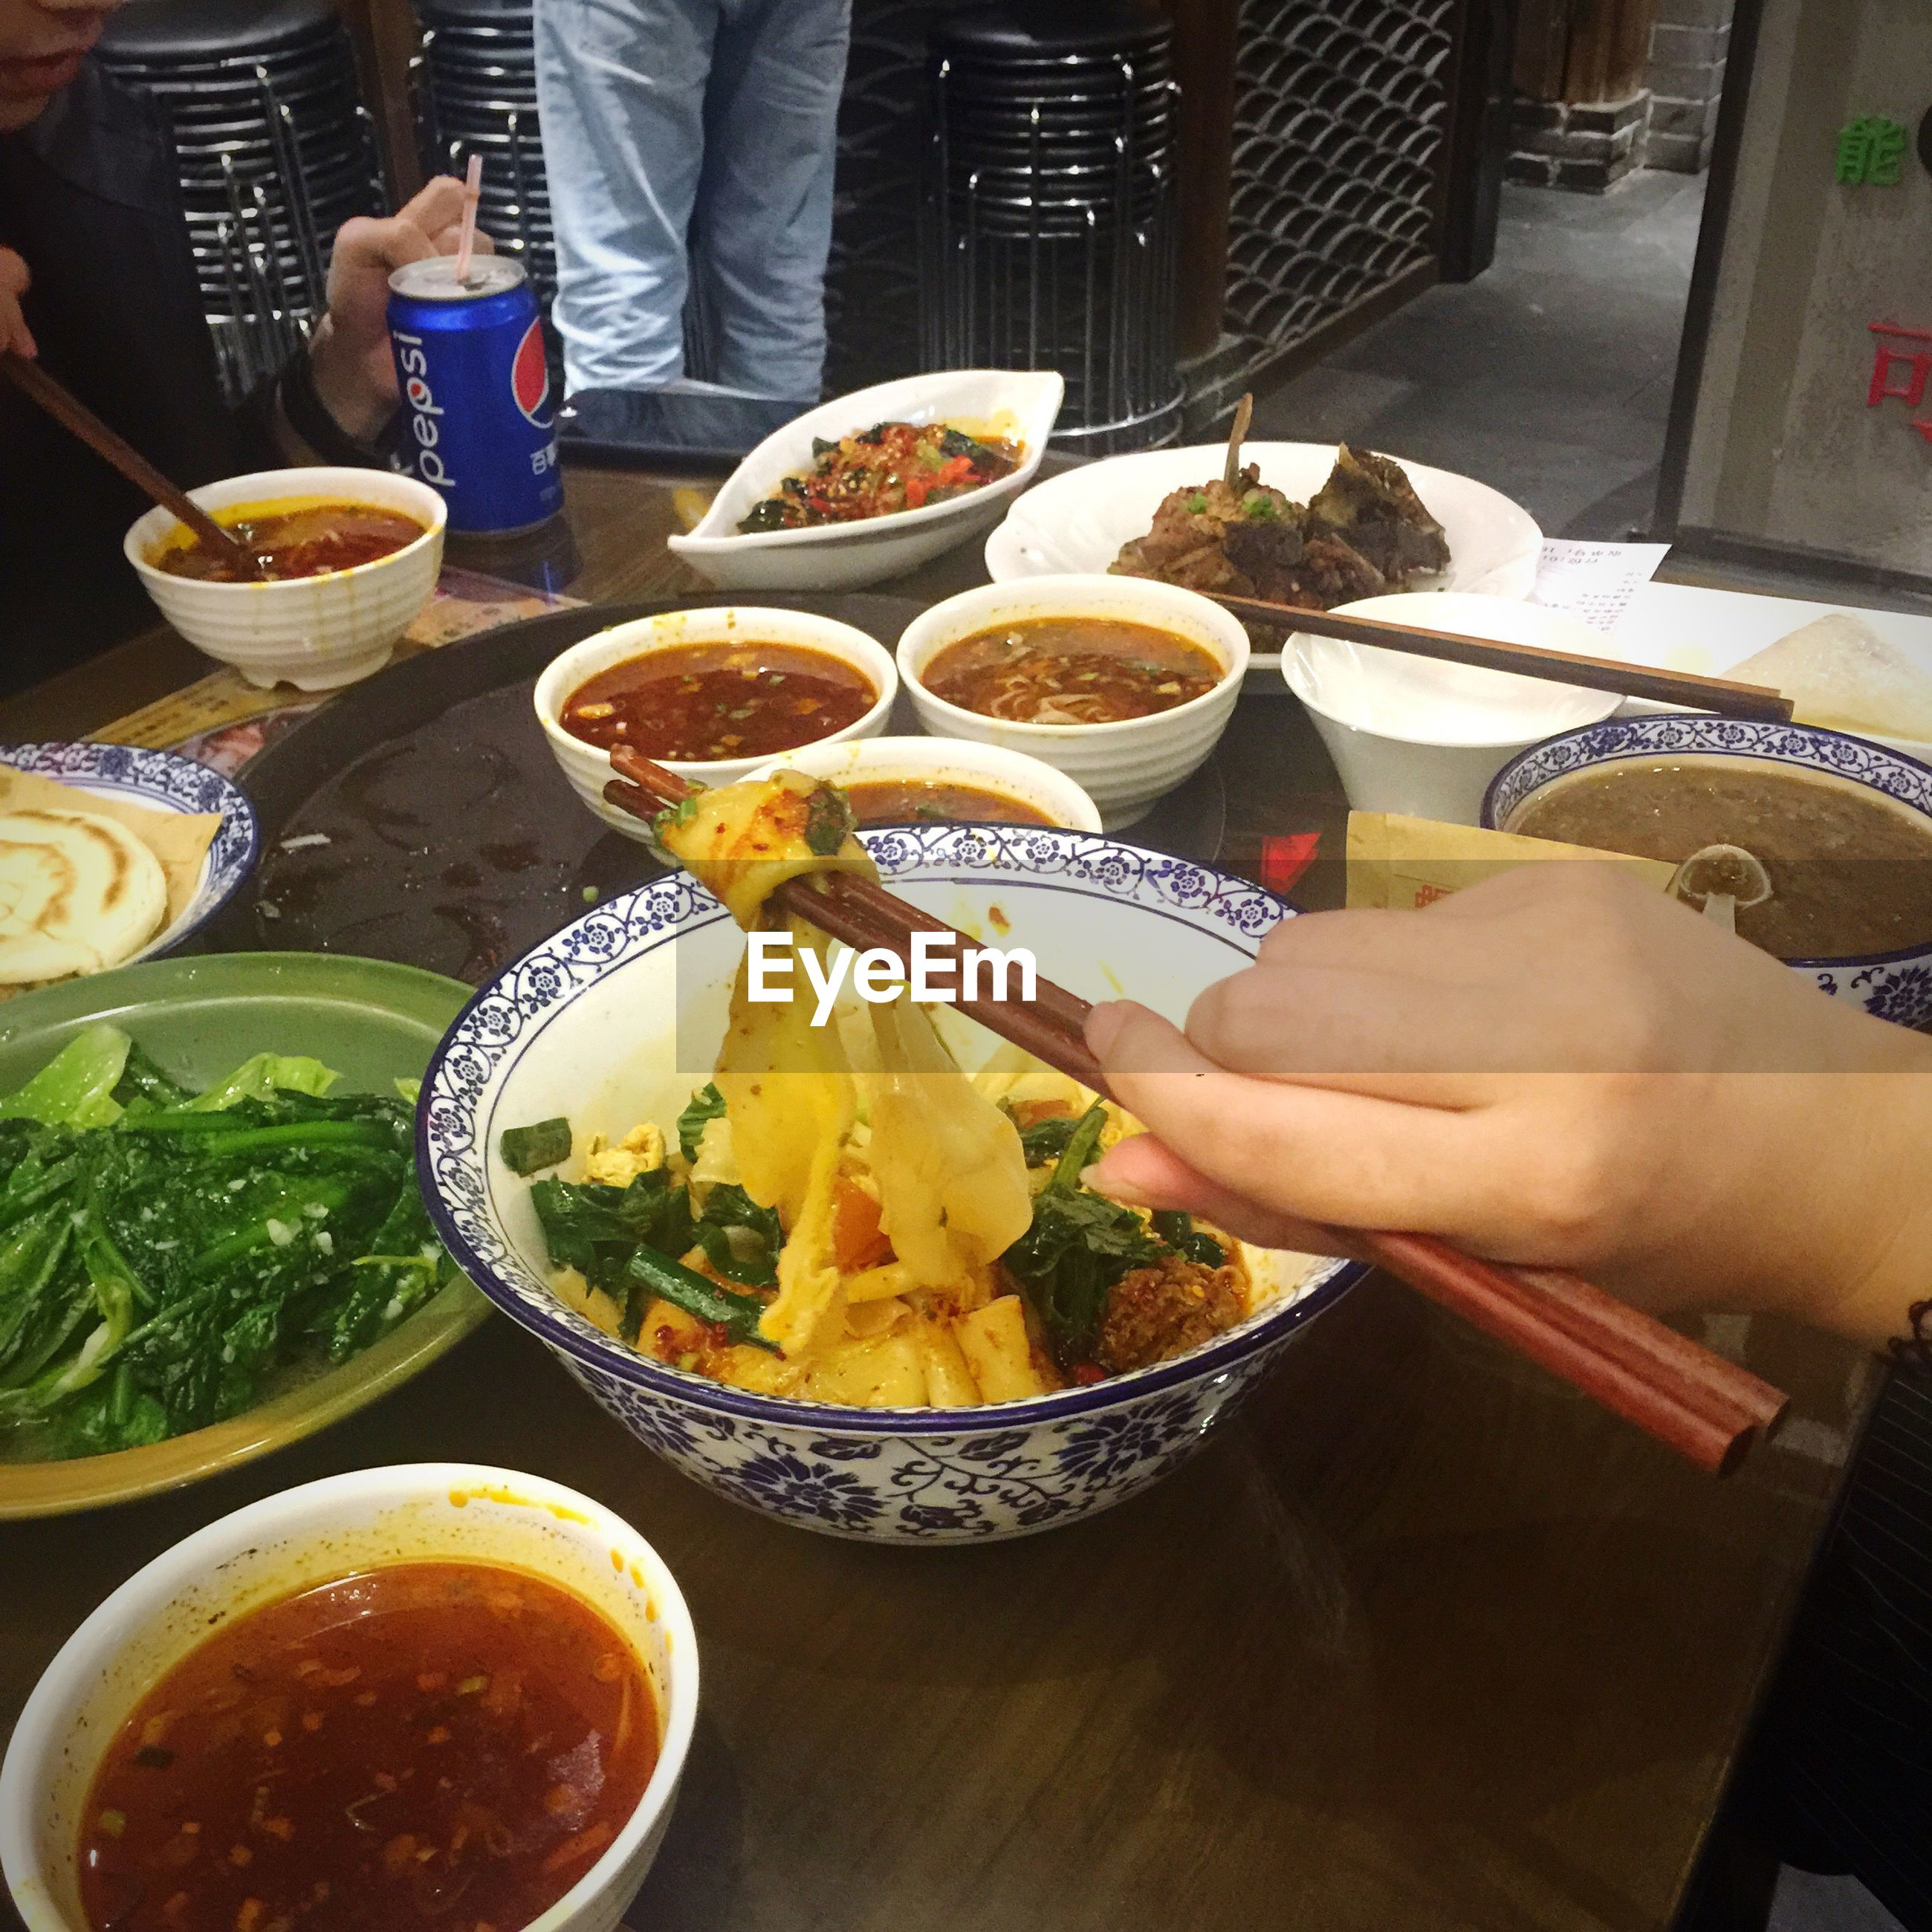 food and drink, food, freshness, person, holding, table, lifestyles, healthy eating, men, plate, ready-to-eat, drink, indoors, leisure activity, midsection